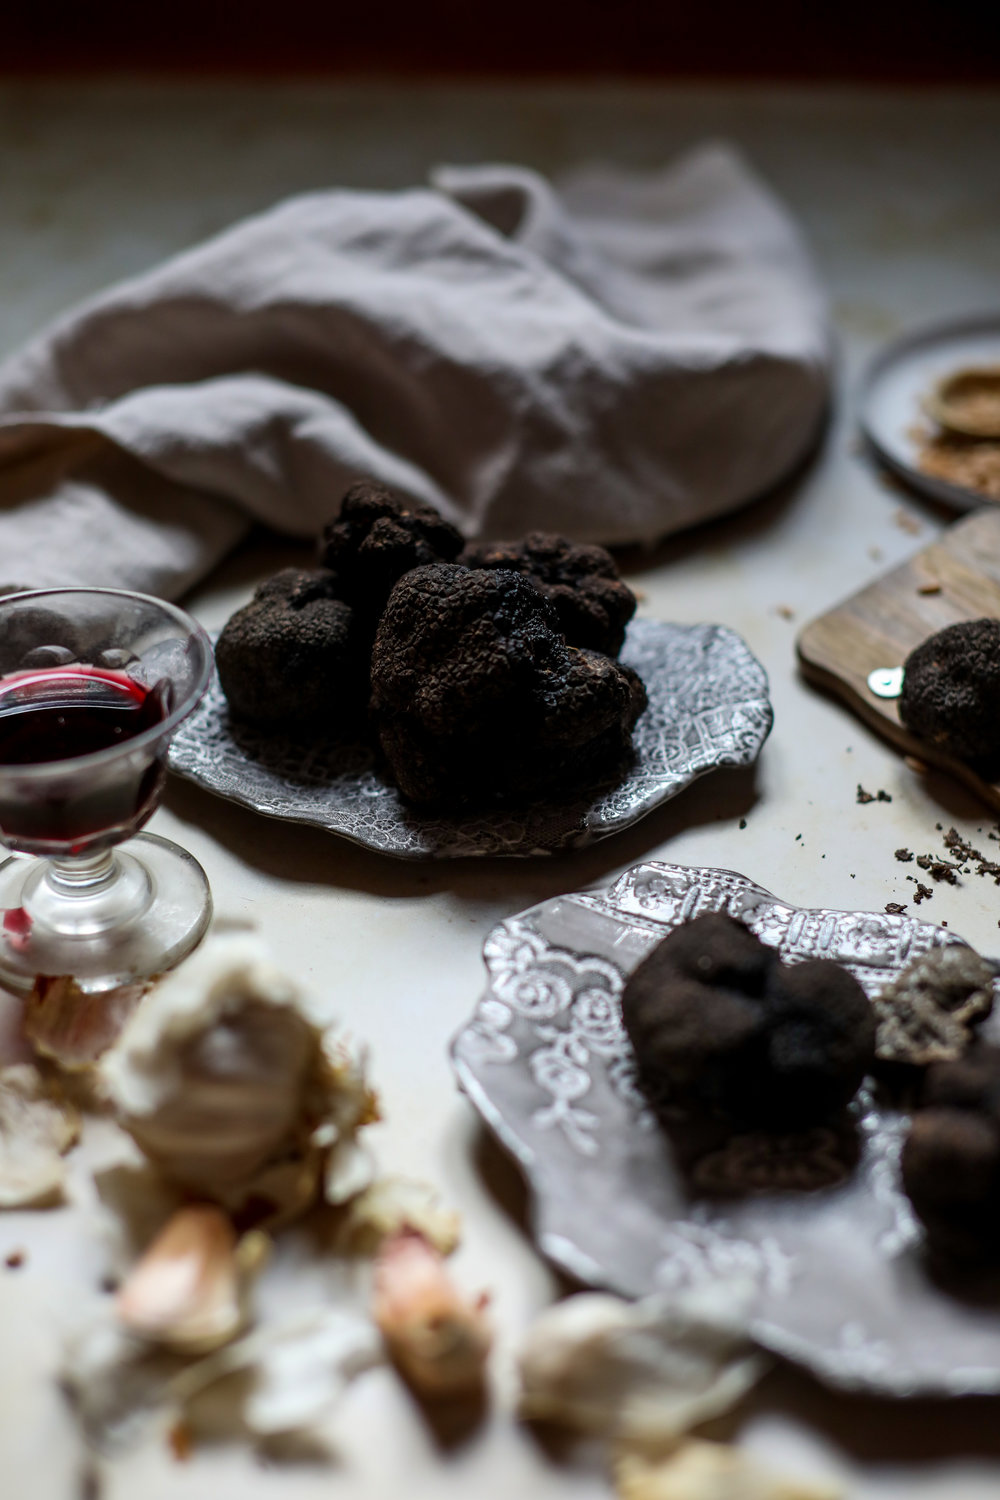 Truffle cookery class, credit Ruth Ribeaucourt